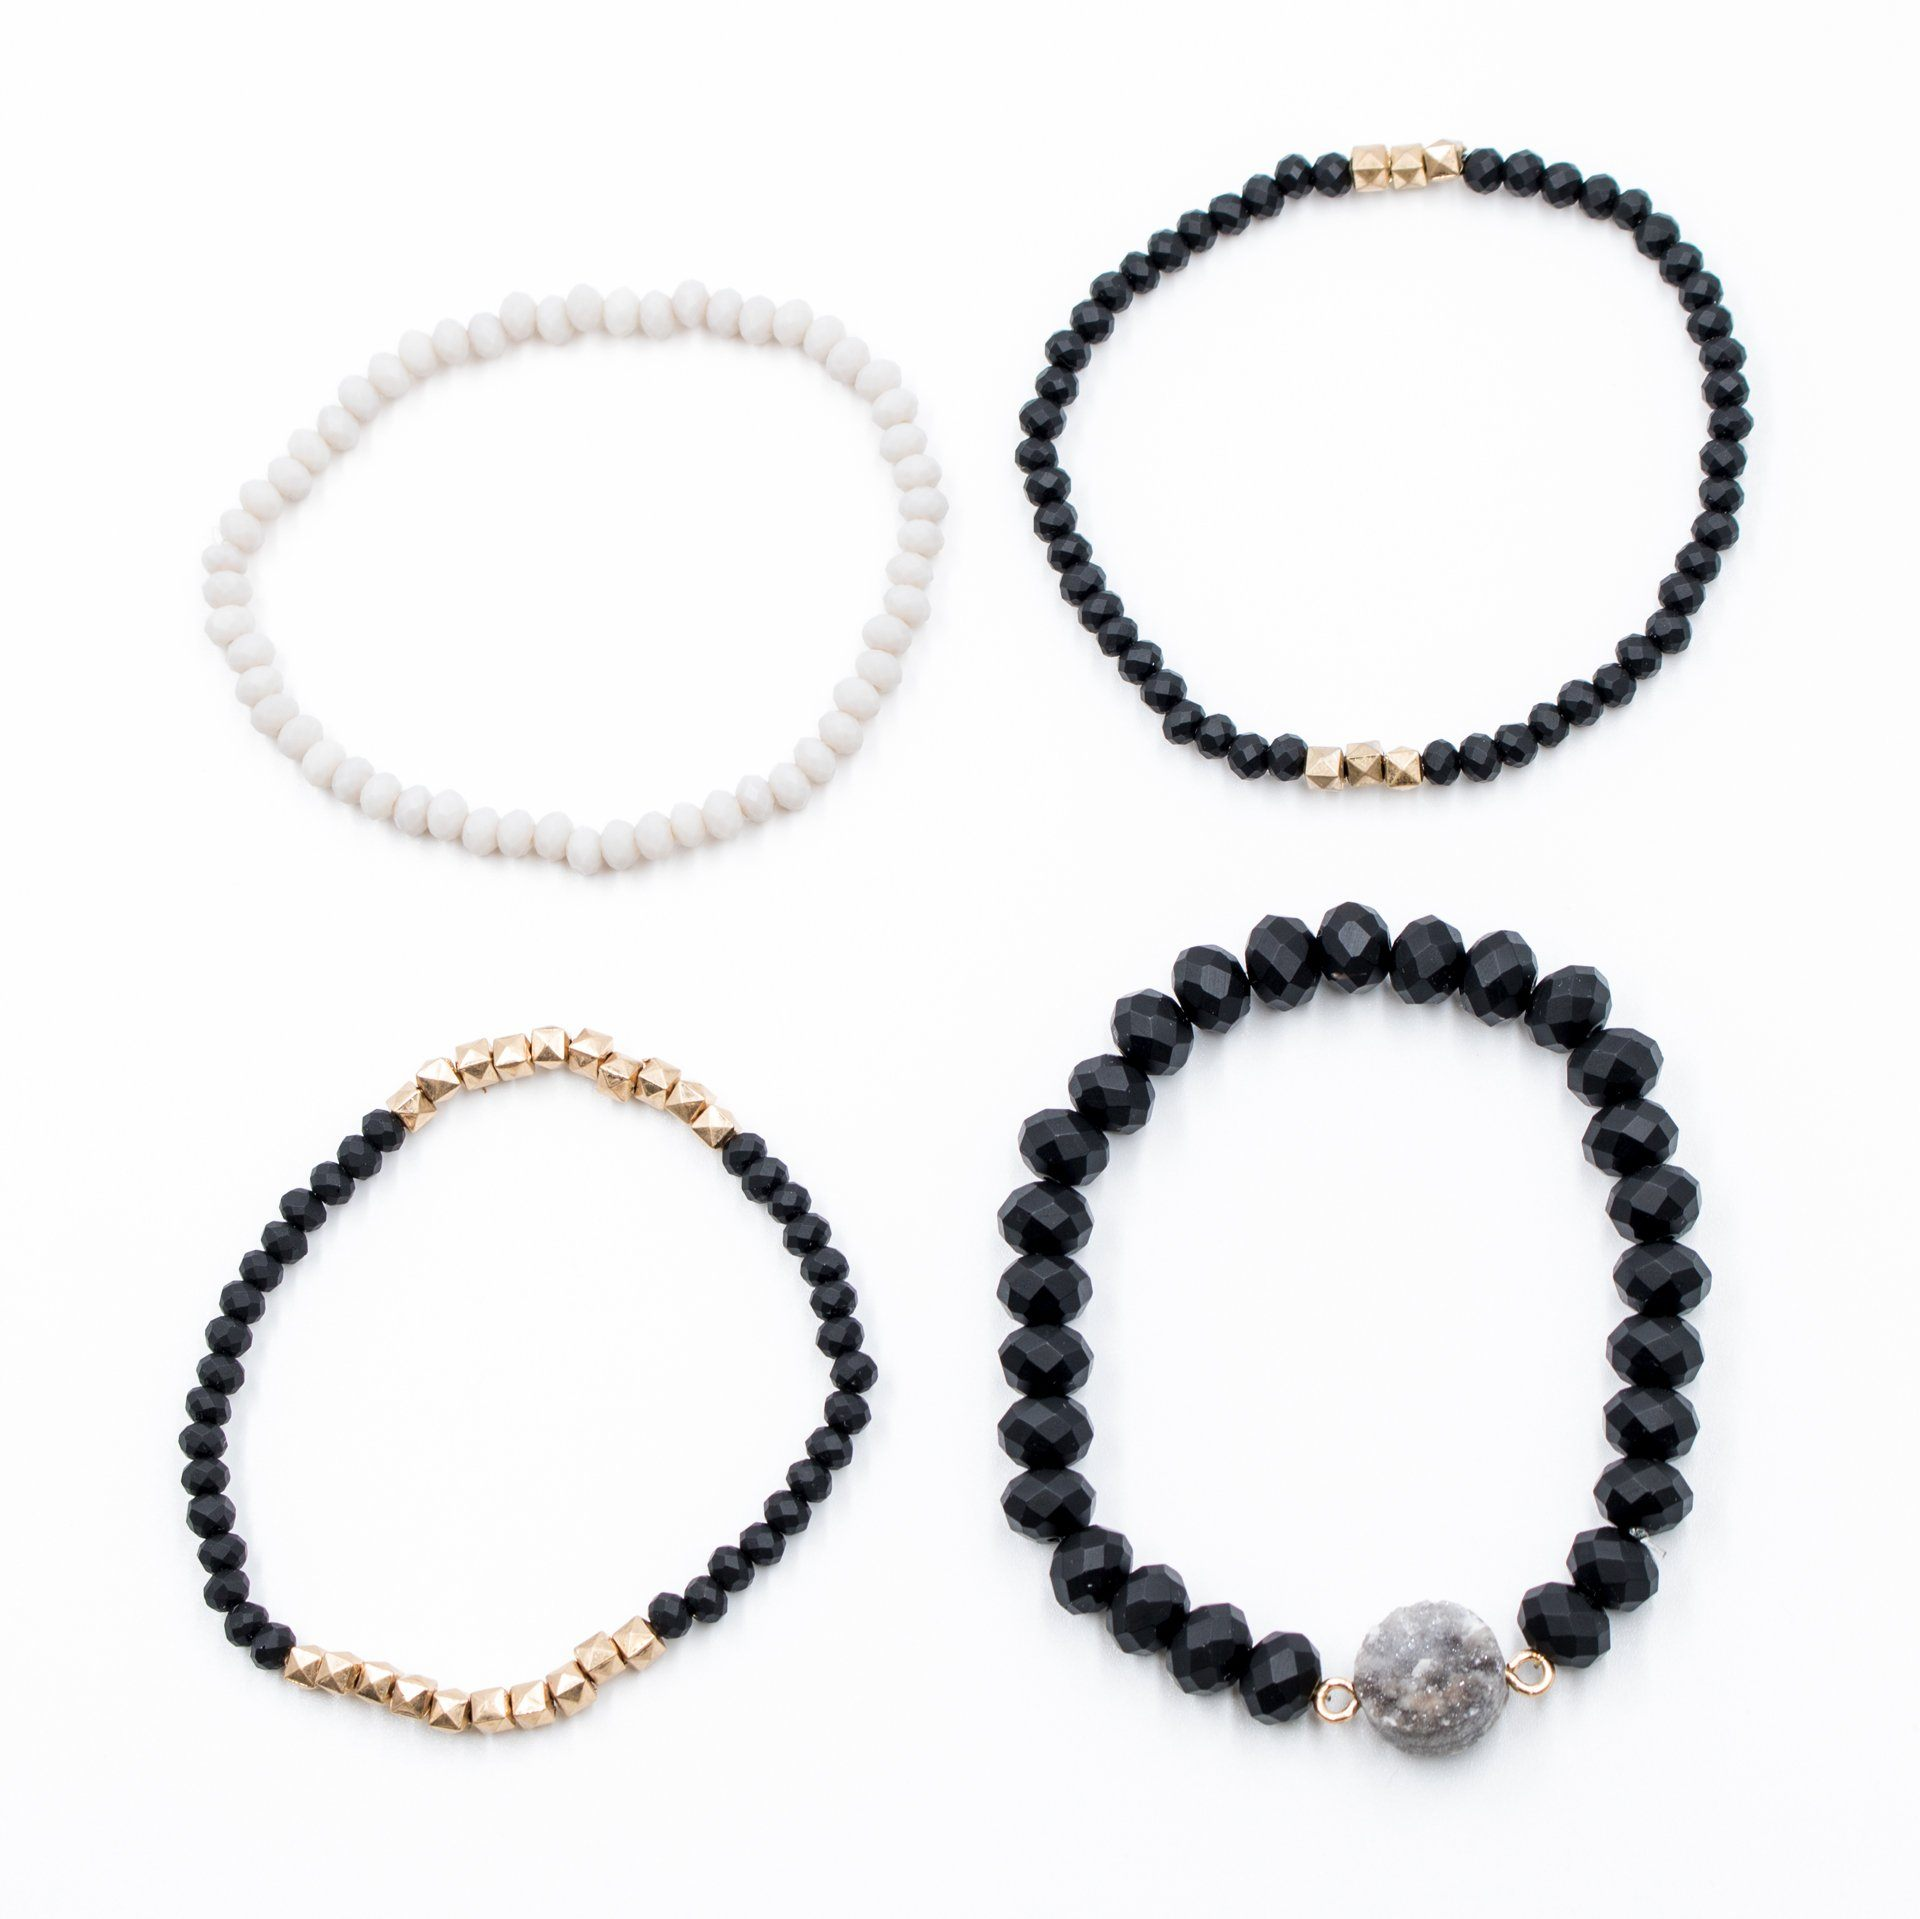 'Midnight Madness' Bracelet Set - Arlo and Arrows